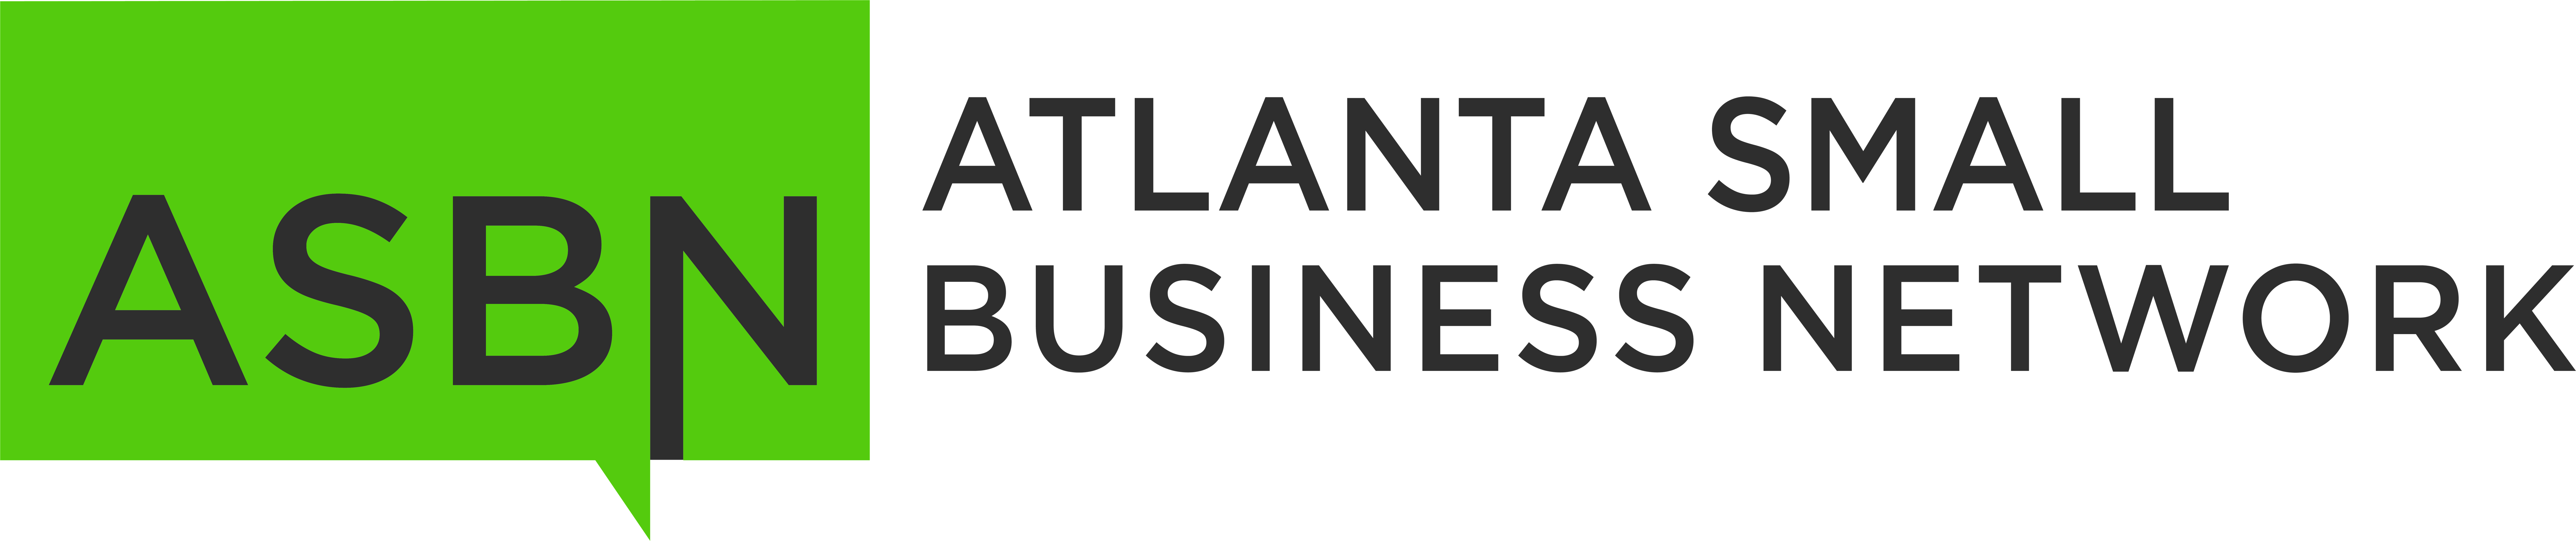 Atlanta Small Business Network